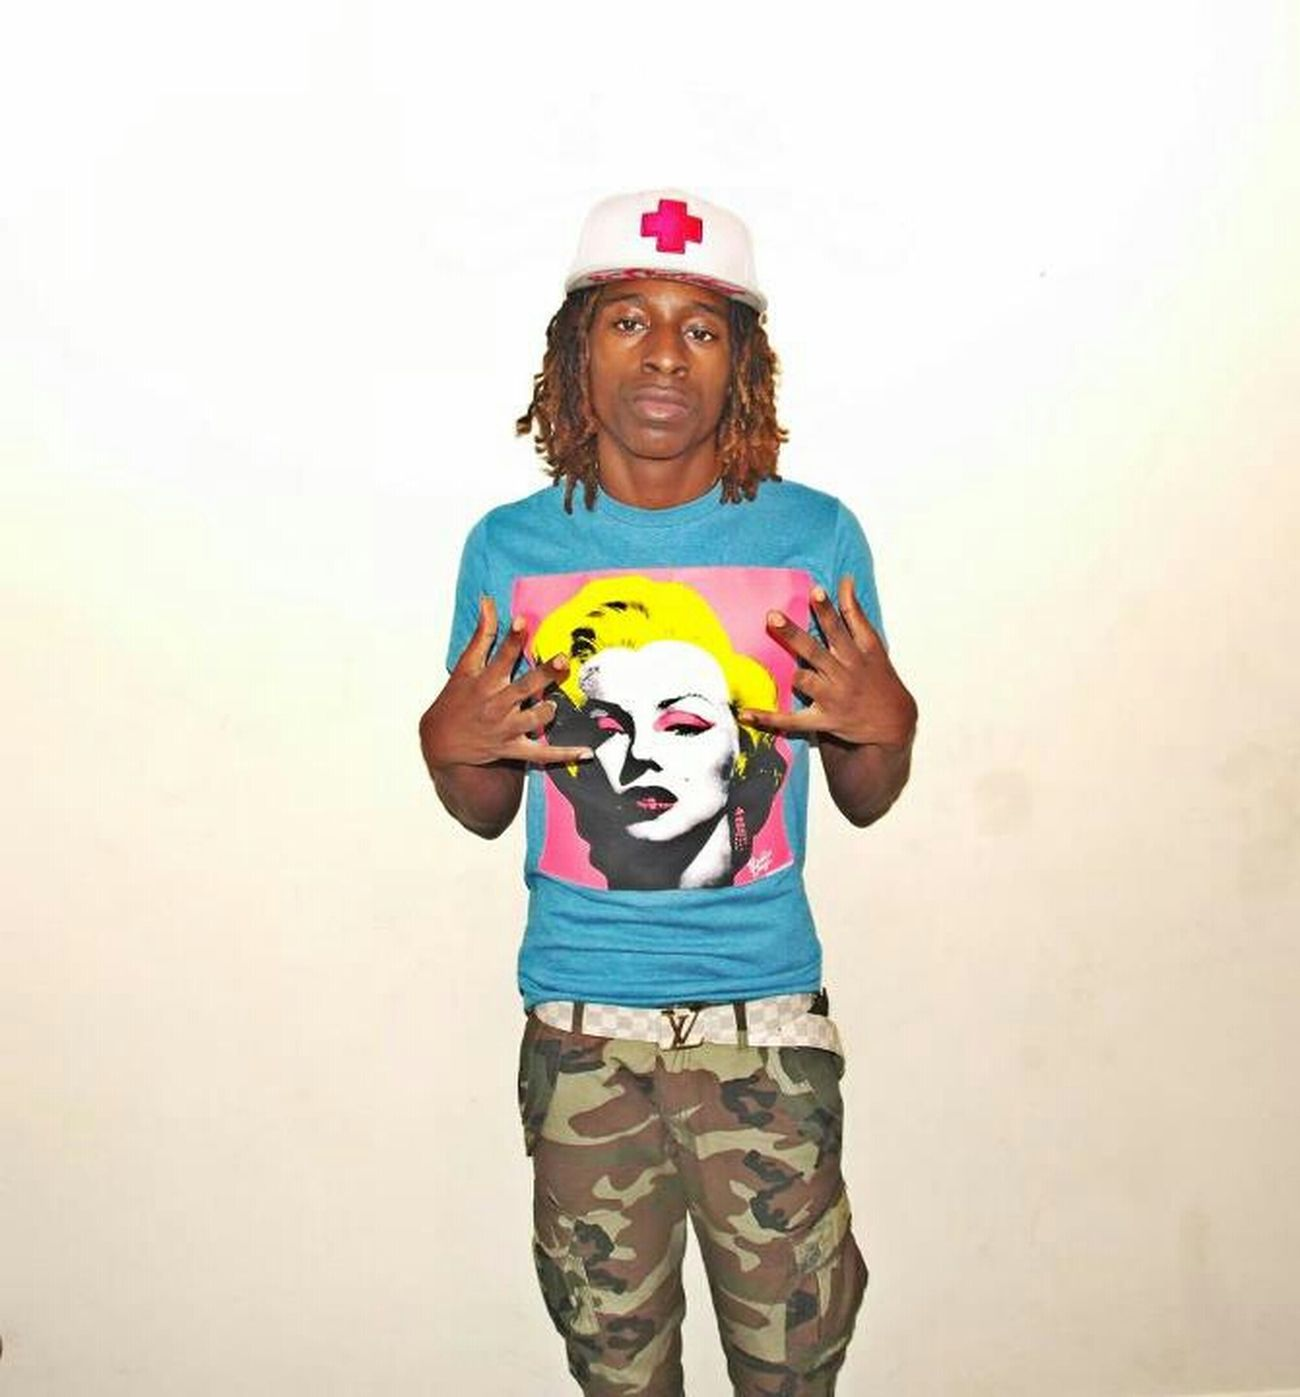 You say you hate me ? Well b*tch i like that ;) #DOPE Taking Photos Swag Fashion OBEY Louis Vuitton Style Marilyn Monroe DOPE High Life Pink Dolphin Designer